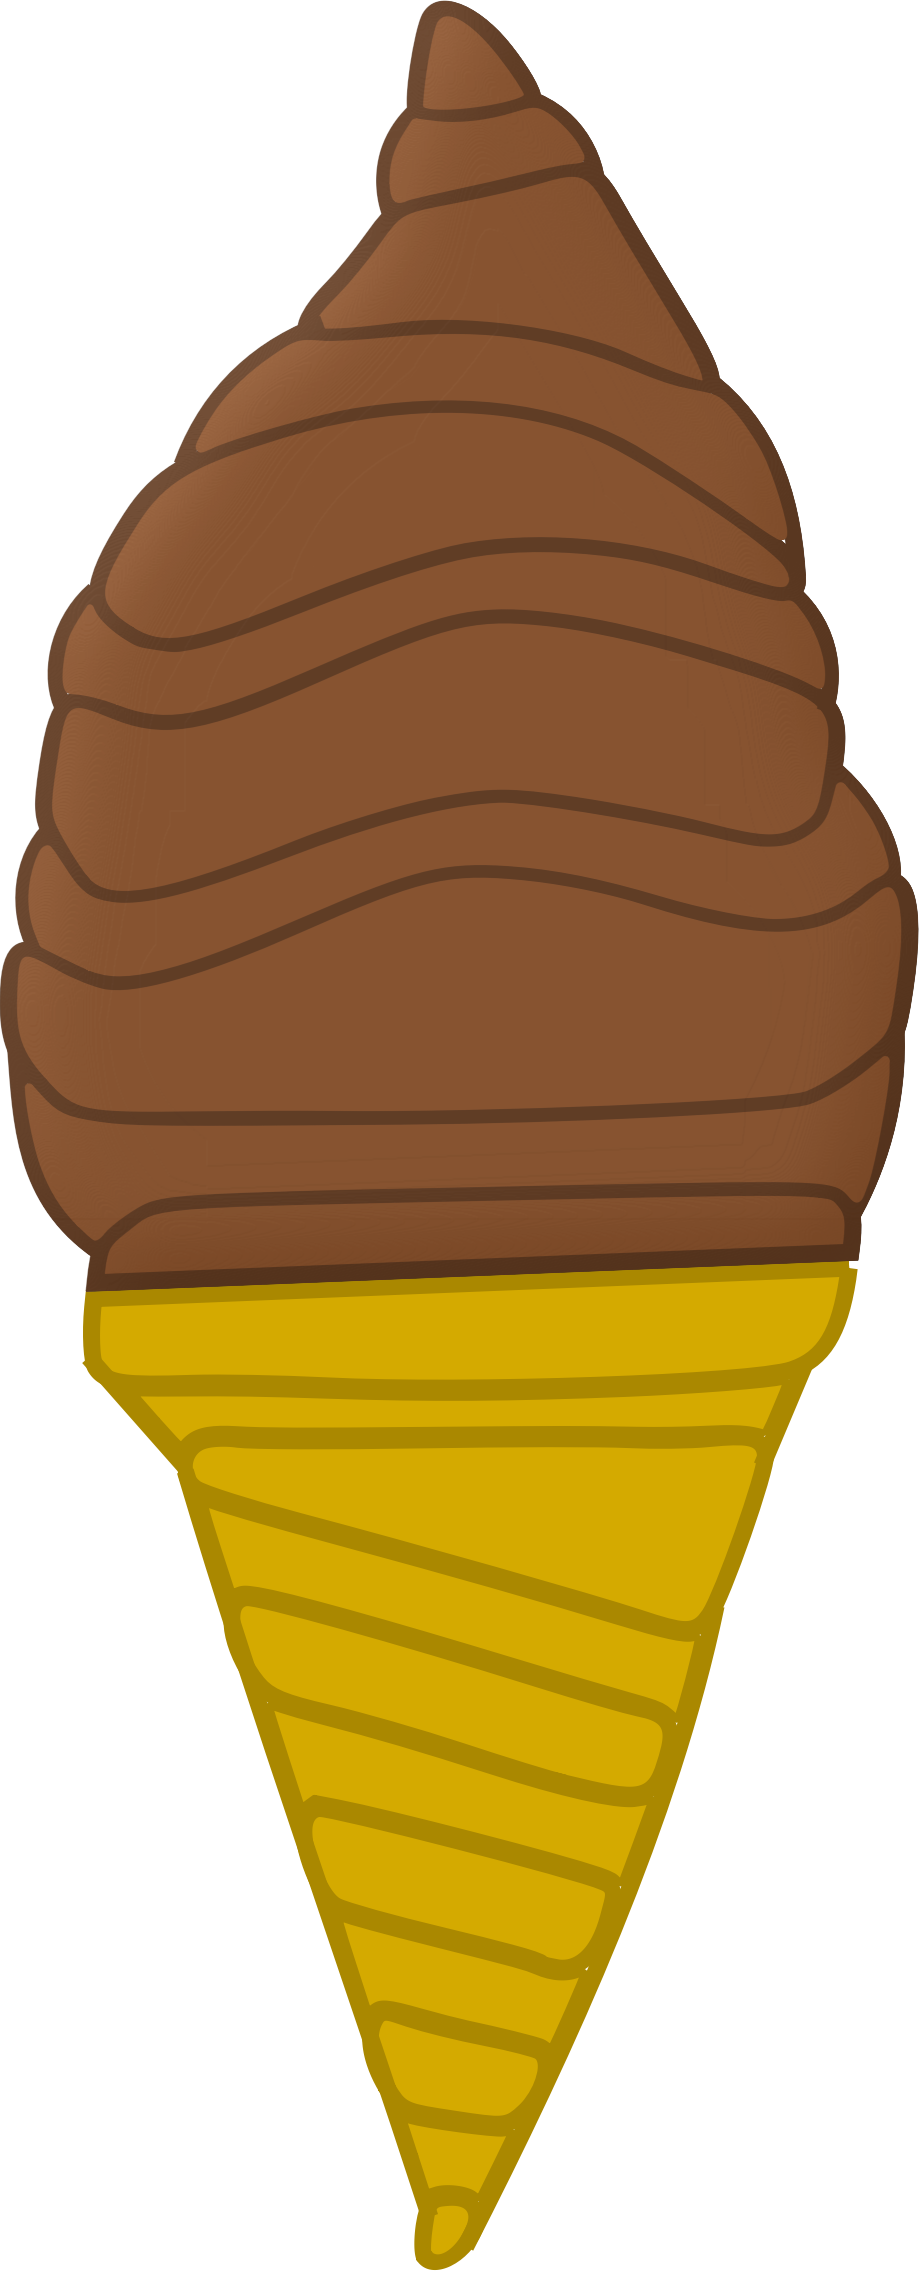 Chocolate Ice Cream Cone by Arvin61r58